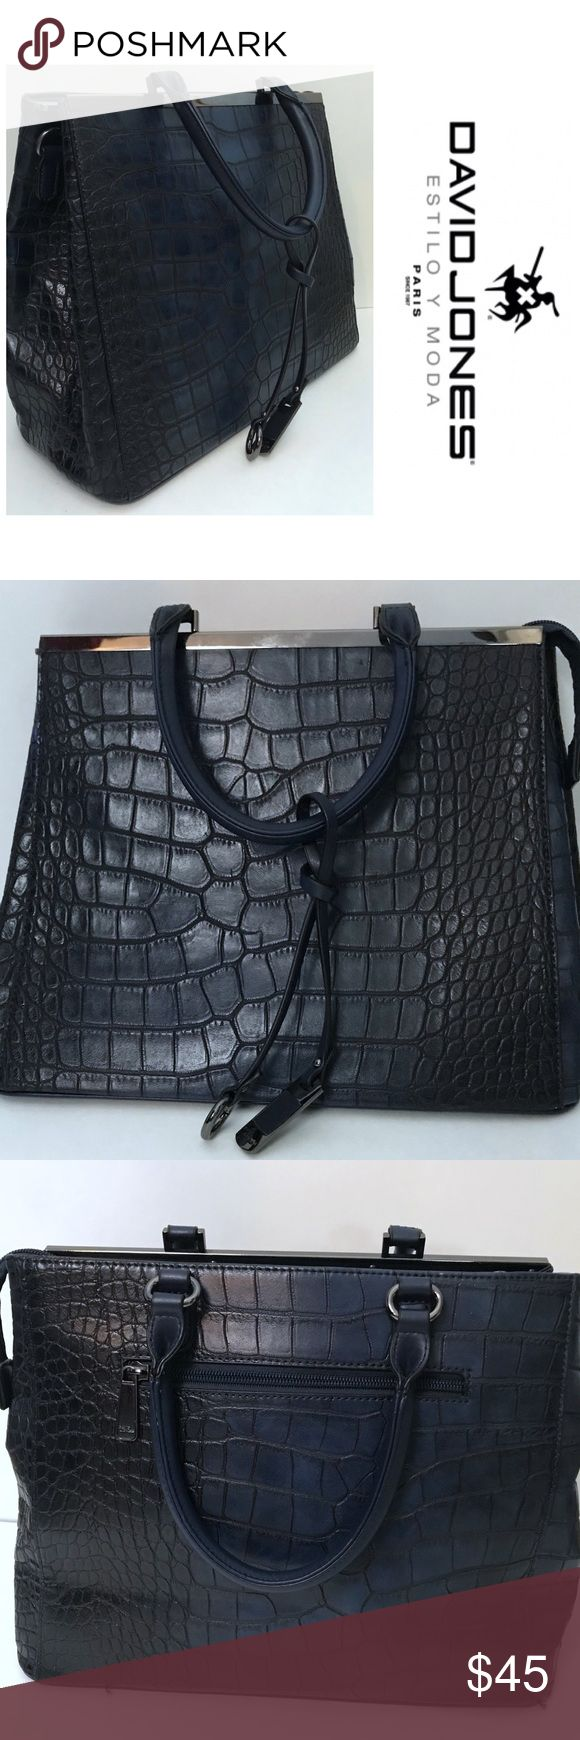 David Jones Navy Blue Faux Alligator Handbag This lovely navy blue David Jones Paris handbag is in excellent condition. Exterior is Navy Blue with silver details, while the interior is a tan color. One exterior zipper pocket, two interior zipper pockets, and two additional pockets. Large interior. David Jones Paris Bags